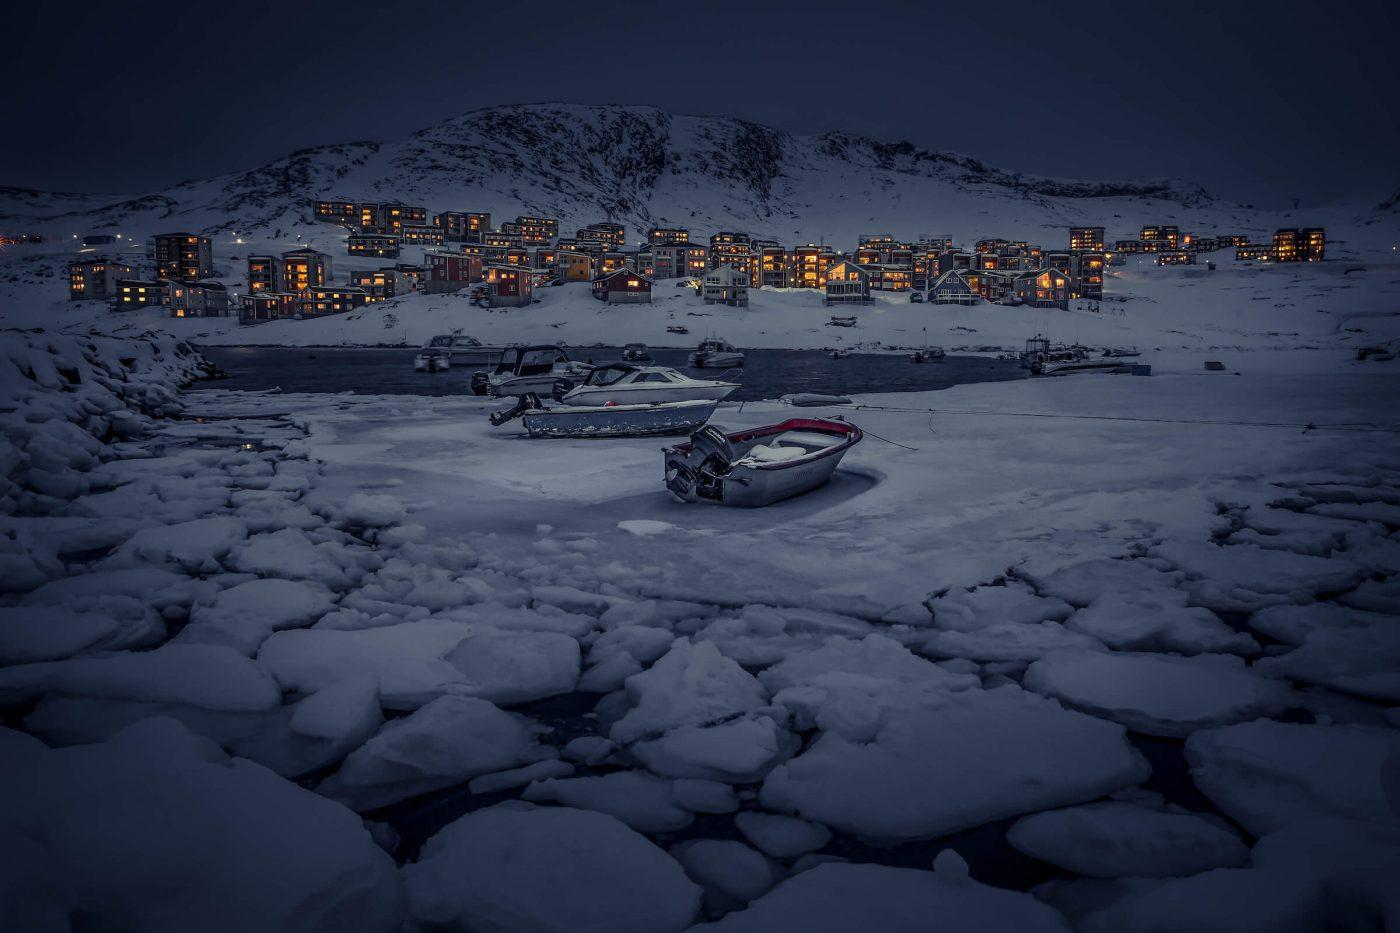 A winter evening scene from Qinngorput harbour in Nuuk in Greenland. By Mads Pihl